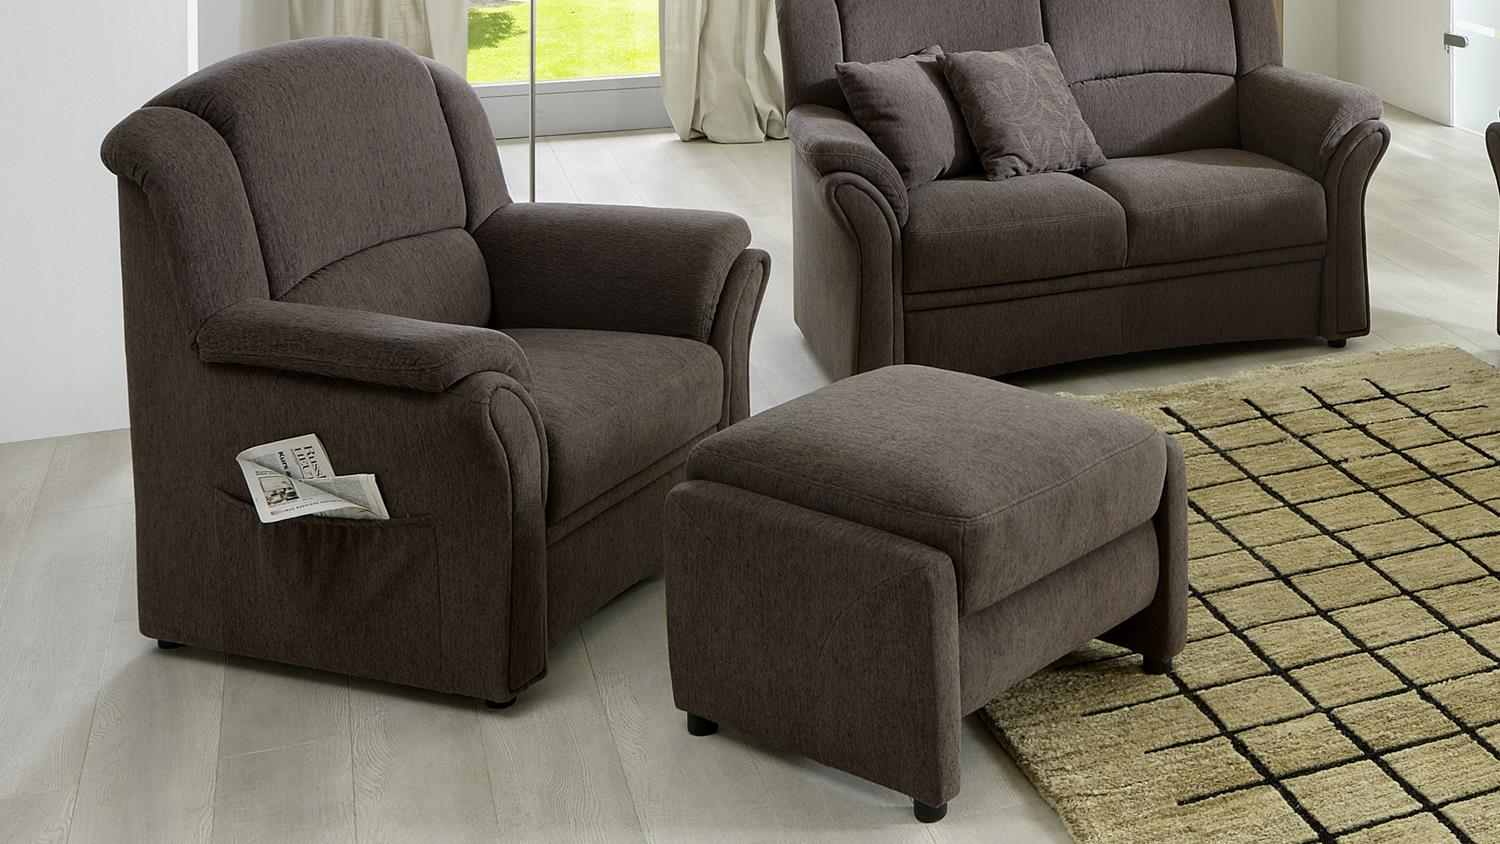 Sofa Garnitur 2 Teilig Sofa Garnitur 2 Teilig Perfect Sofa Set Leeds In With